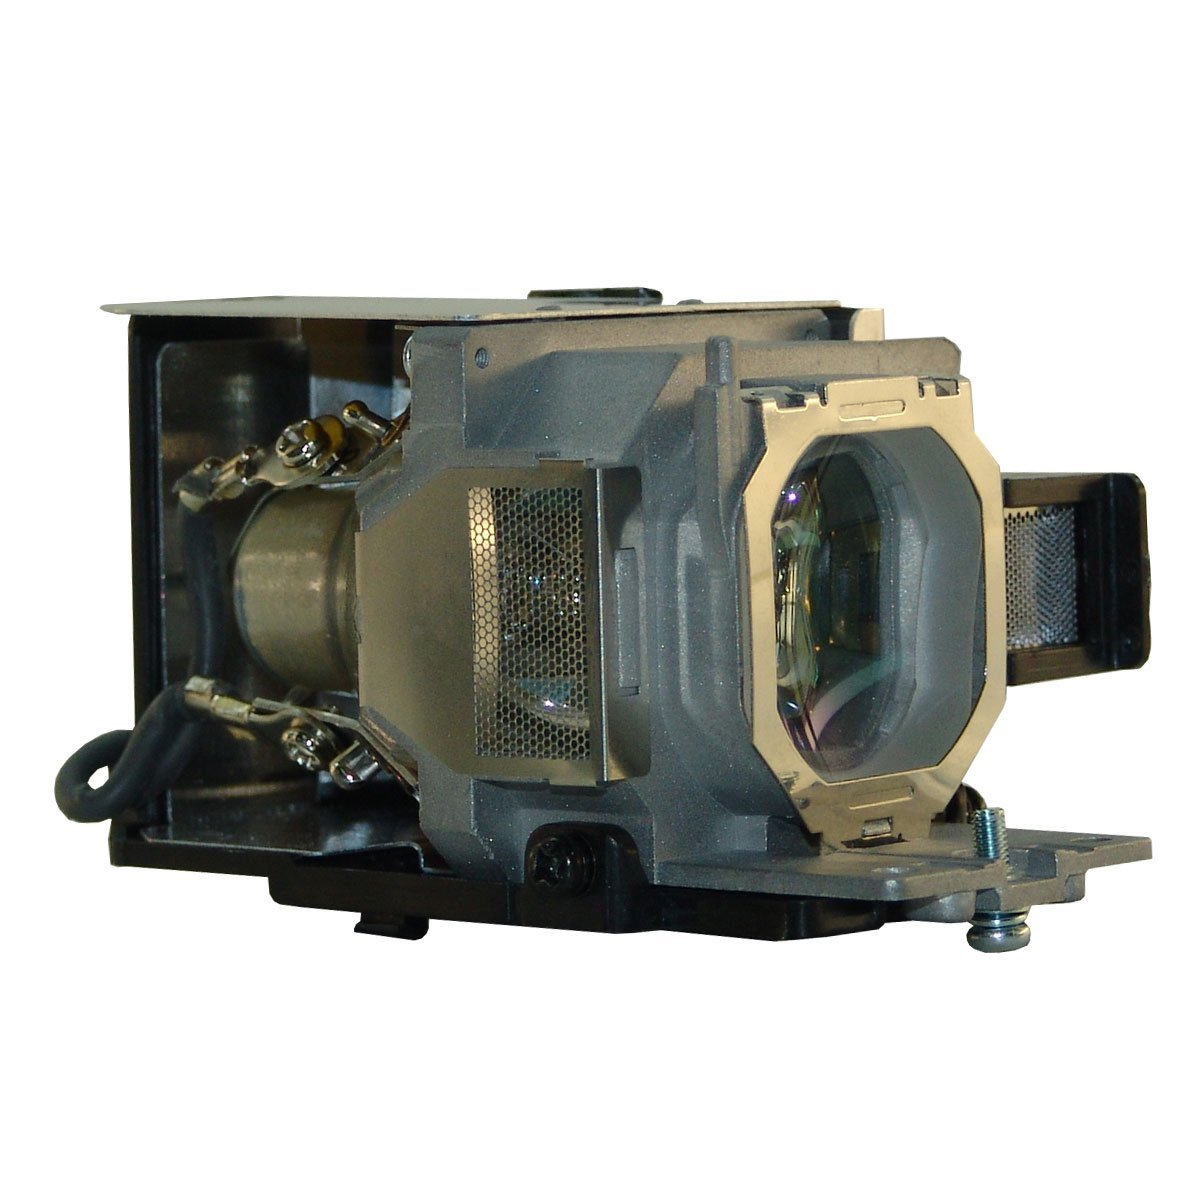 LMP-D200 LMPD200 for Sony VPL-DX10 VPL-DX11 VPL-DX15 Projector Bulb Lamp with housing lmp h160 lmph160 for sony vpl aw10 vpl aw10s vpl aw15 vpl aw15s projector bulb lamp with housing with 180 days warranty